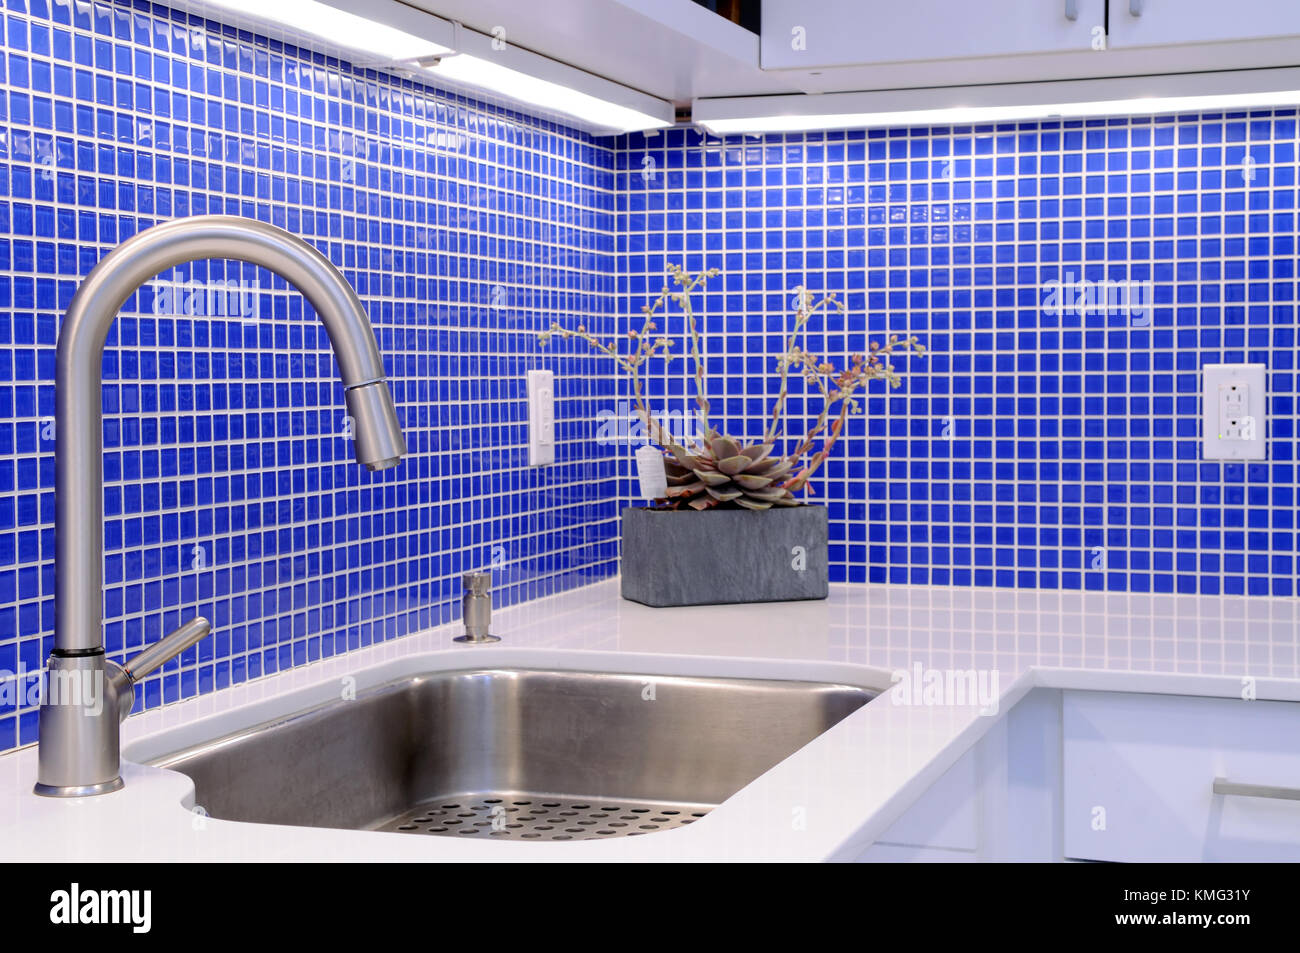 White Kitchen Splash Back Stock Photos & White Kitchen Splash Back ...